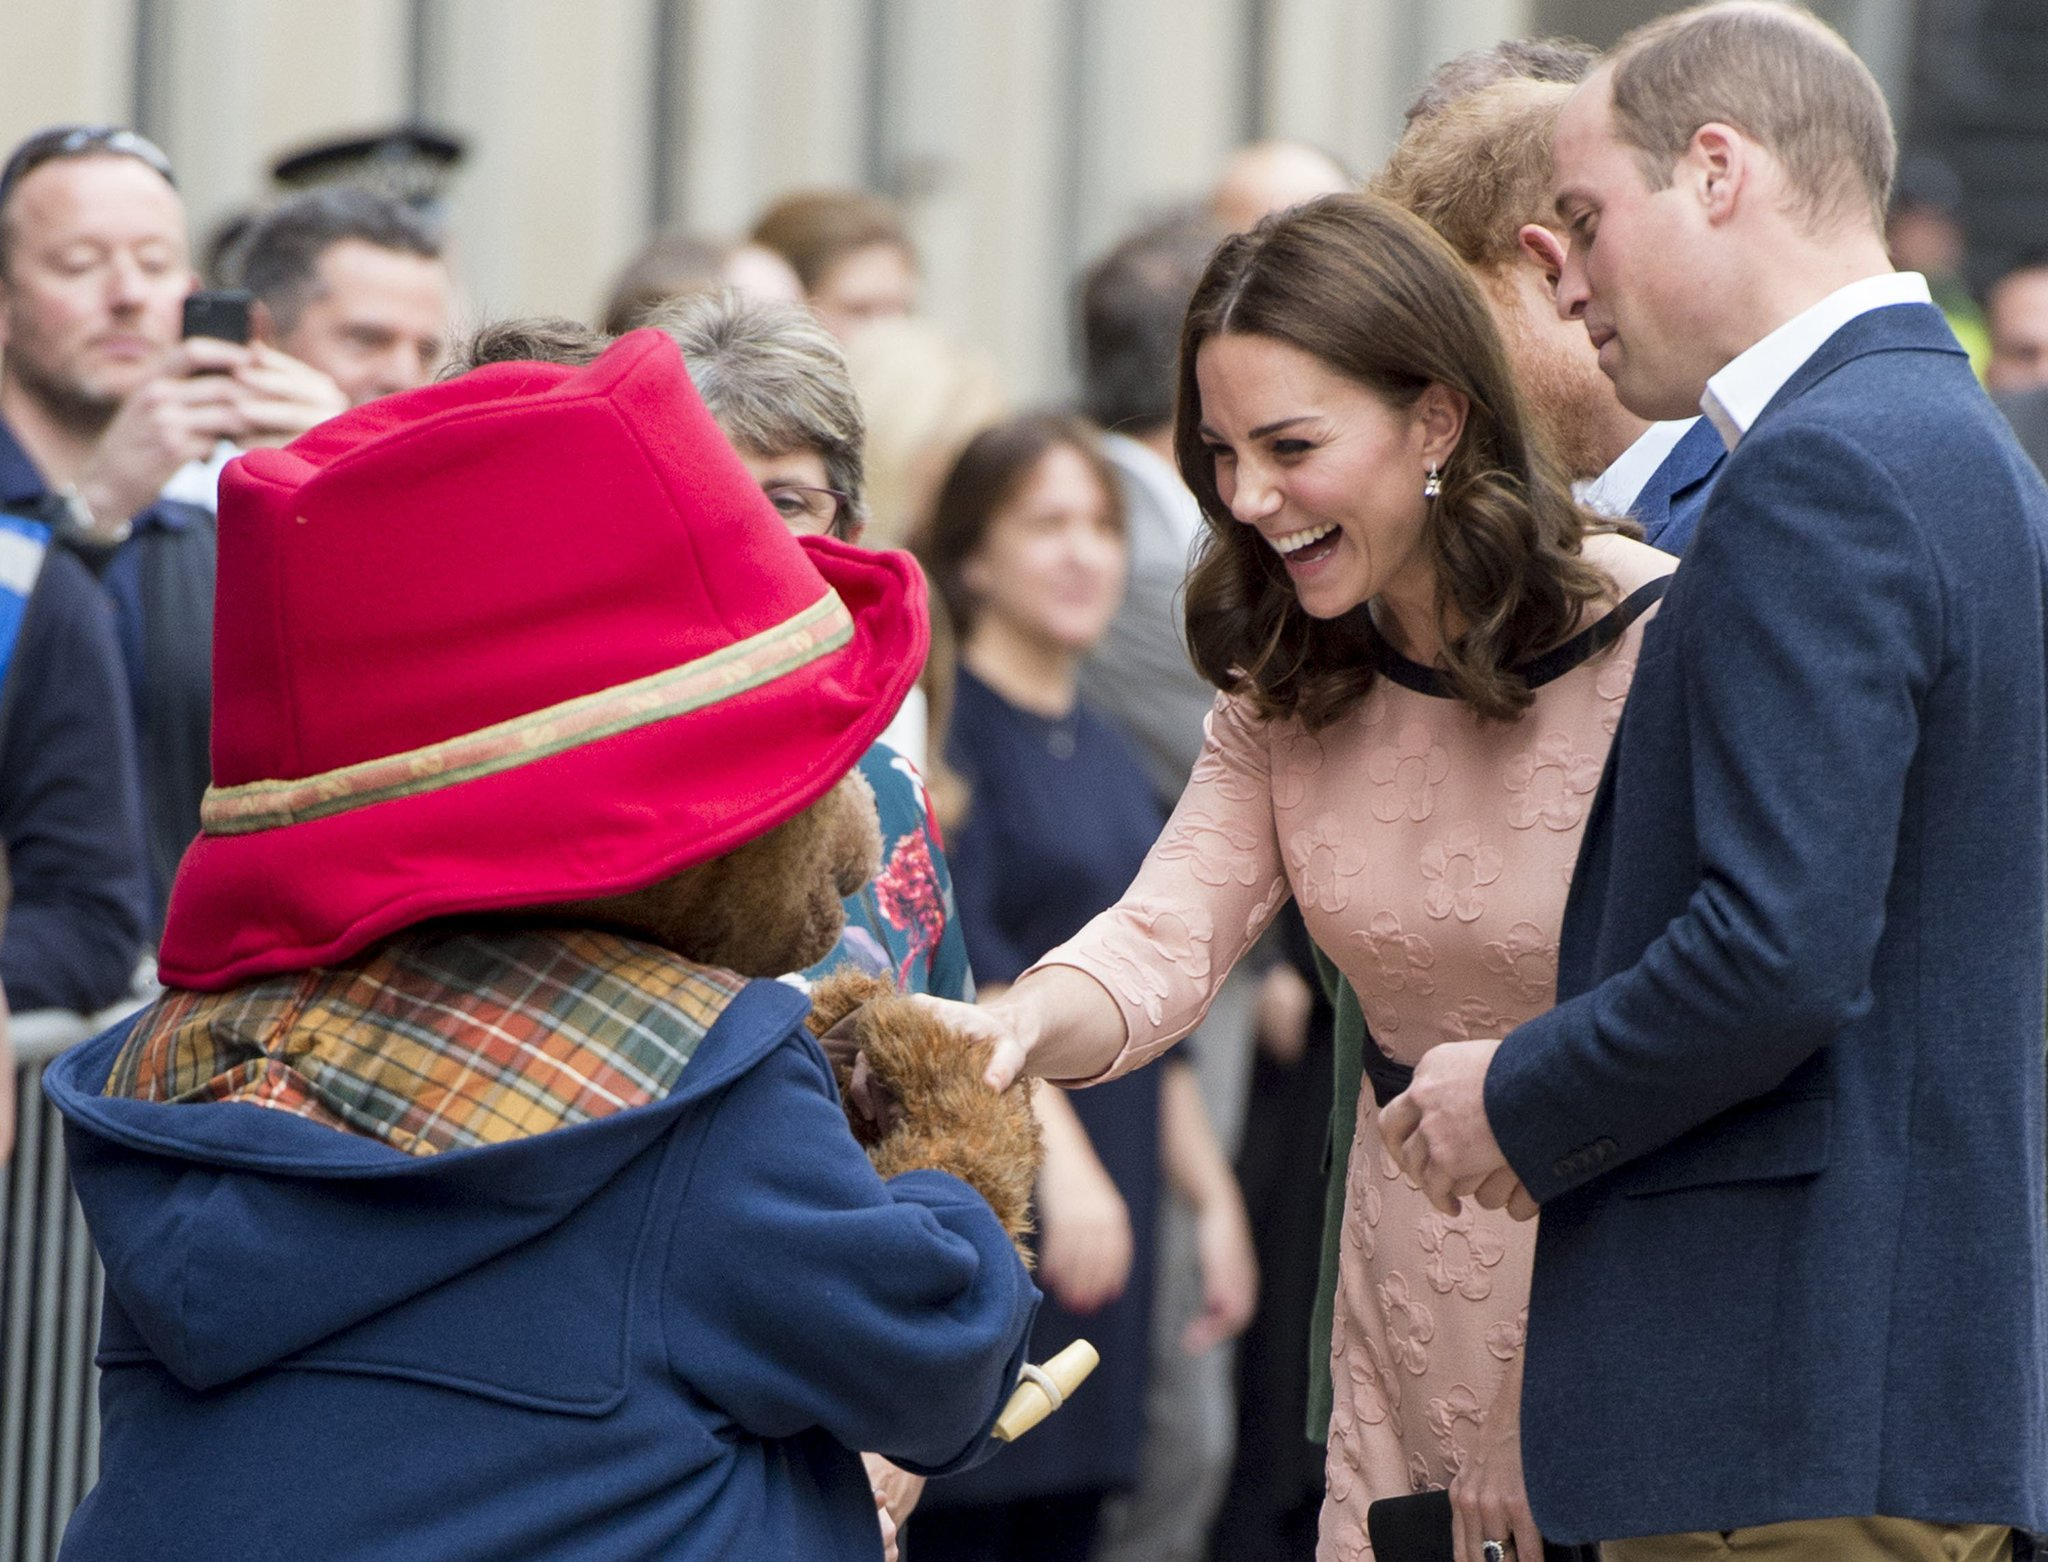 Kate Middleton dancing with Paddington Bear will make your day: https://t.co/dFFNGF5OfX https://t.co/pWsRvN4KXC